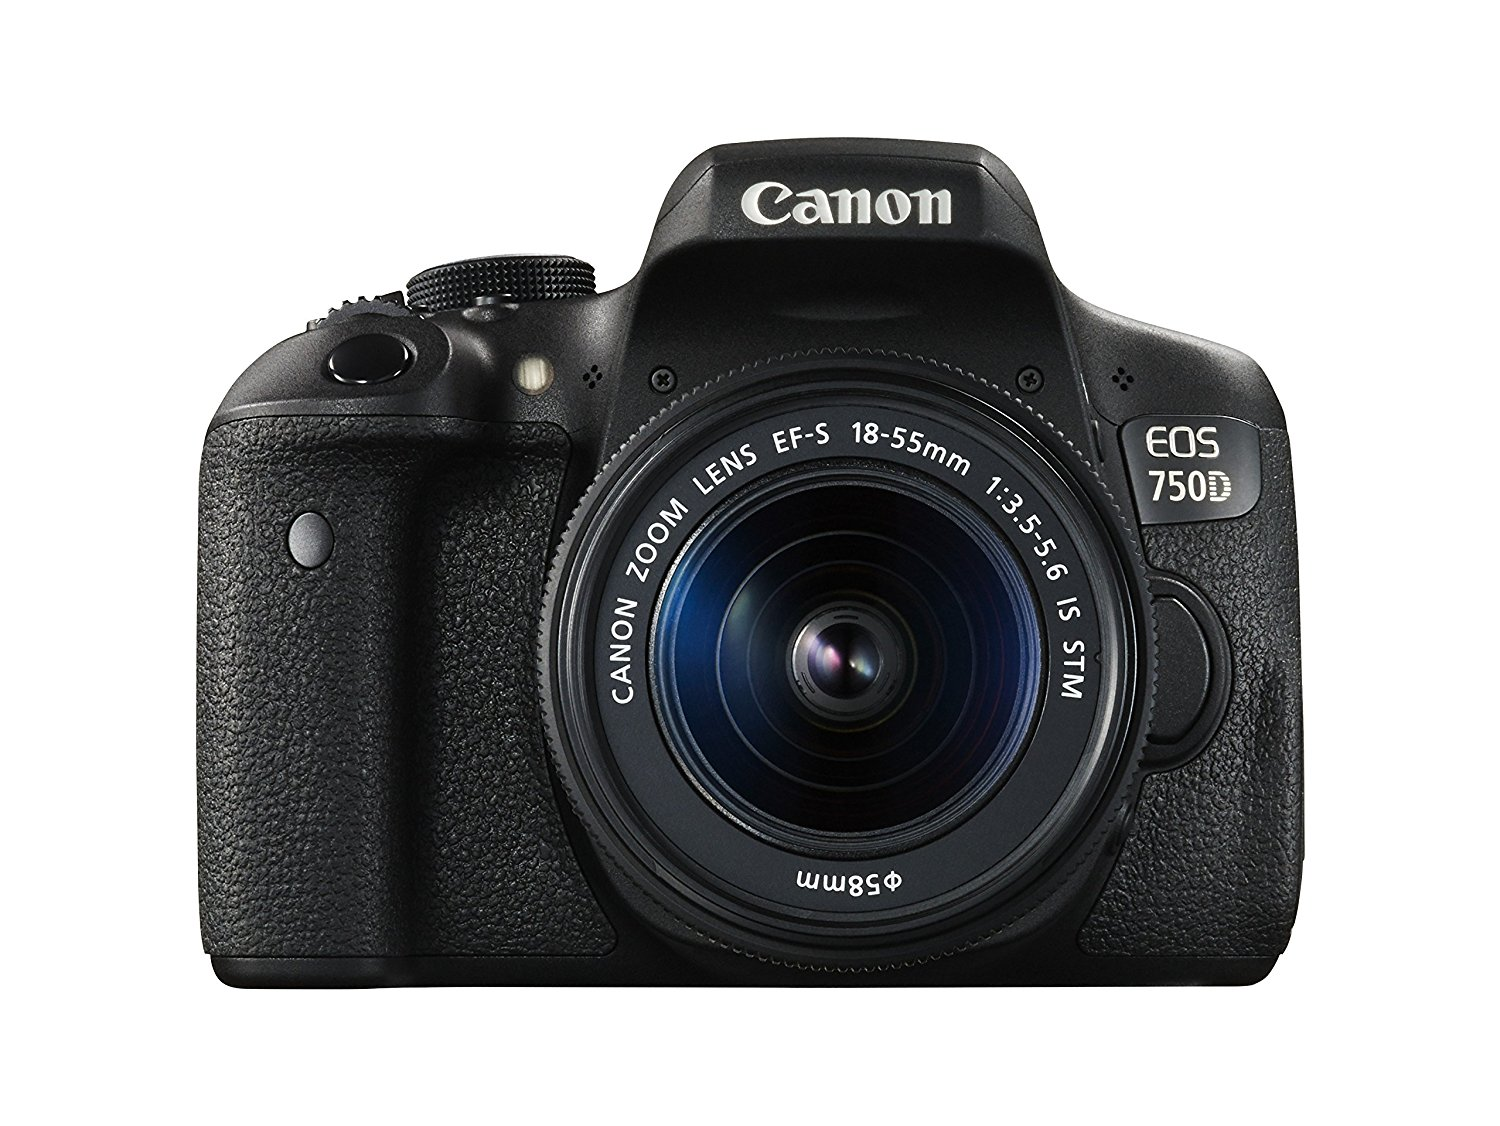 One of the best entry level DSLR's, the Canon 750D!